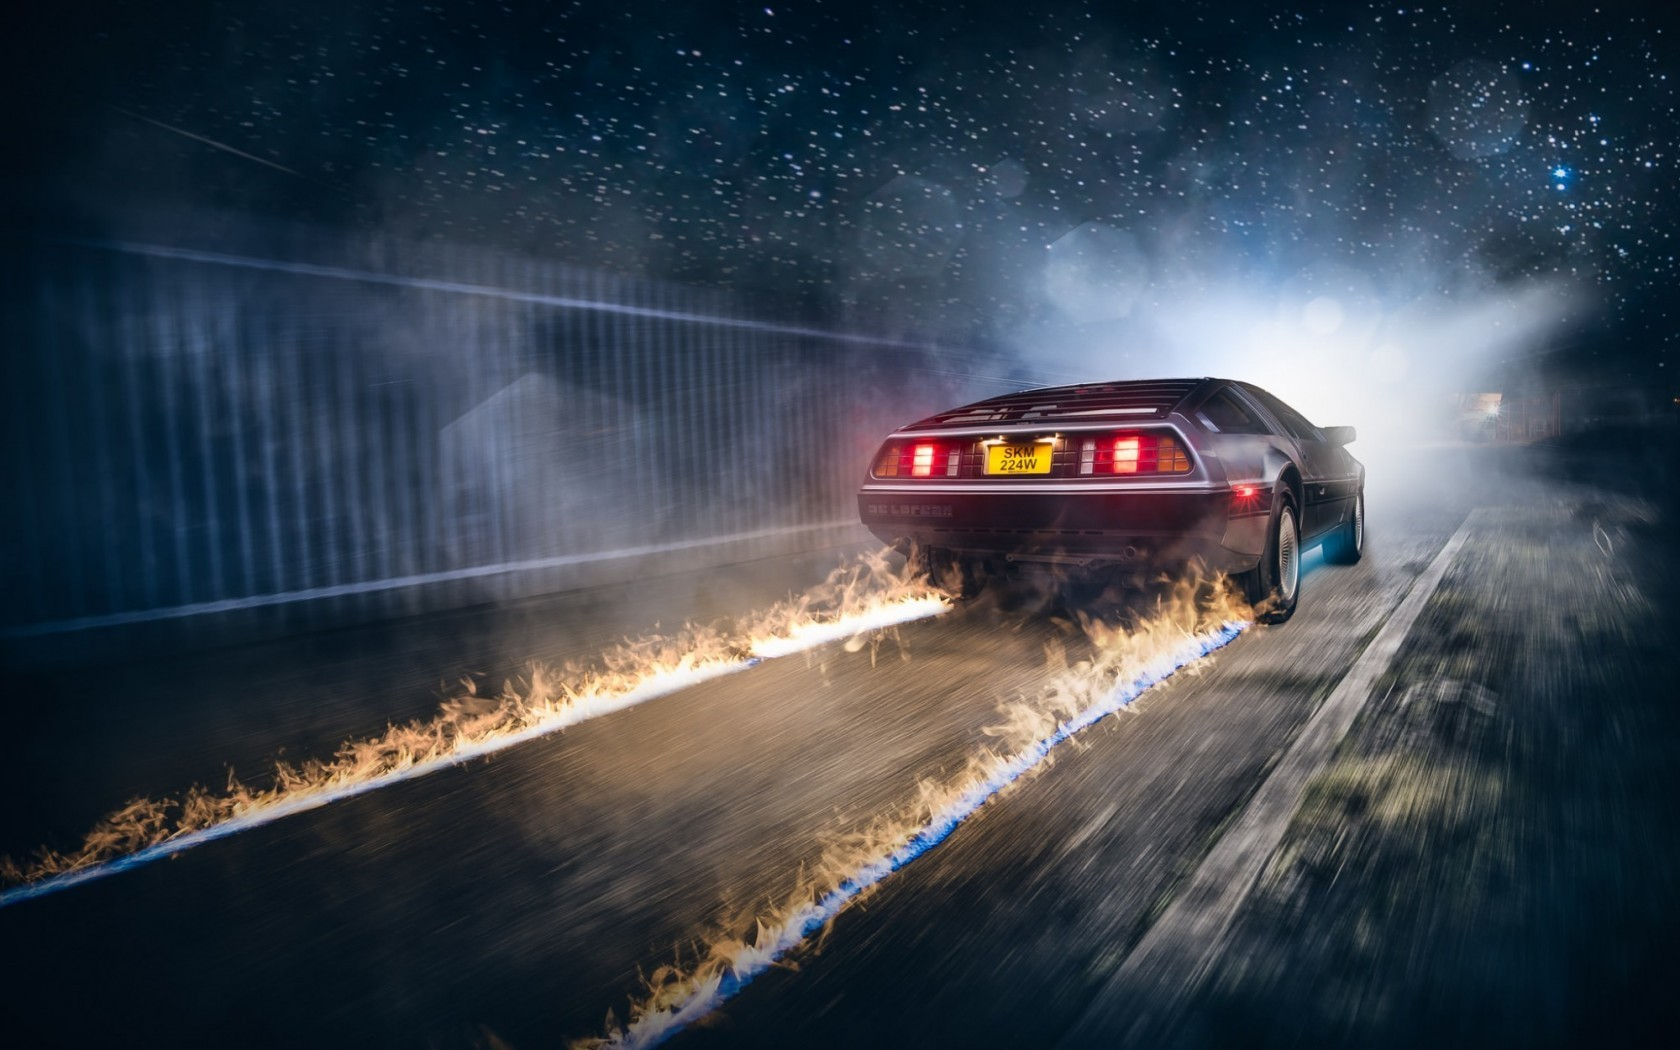 The most popular movies movies artwork DeLorean Back to the Future cars fire 4 Sizes Silk Fabric Canvas Poster Print(China (Mainland))